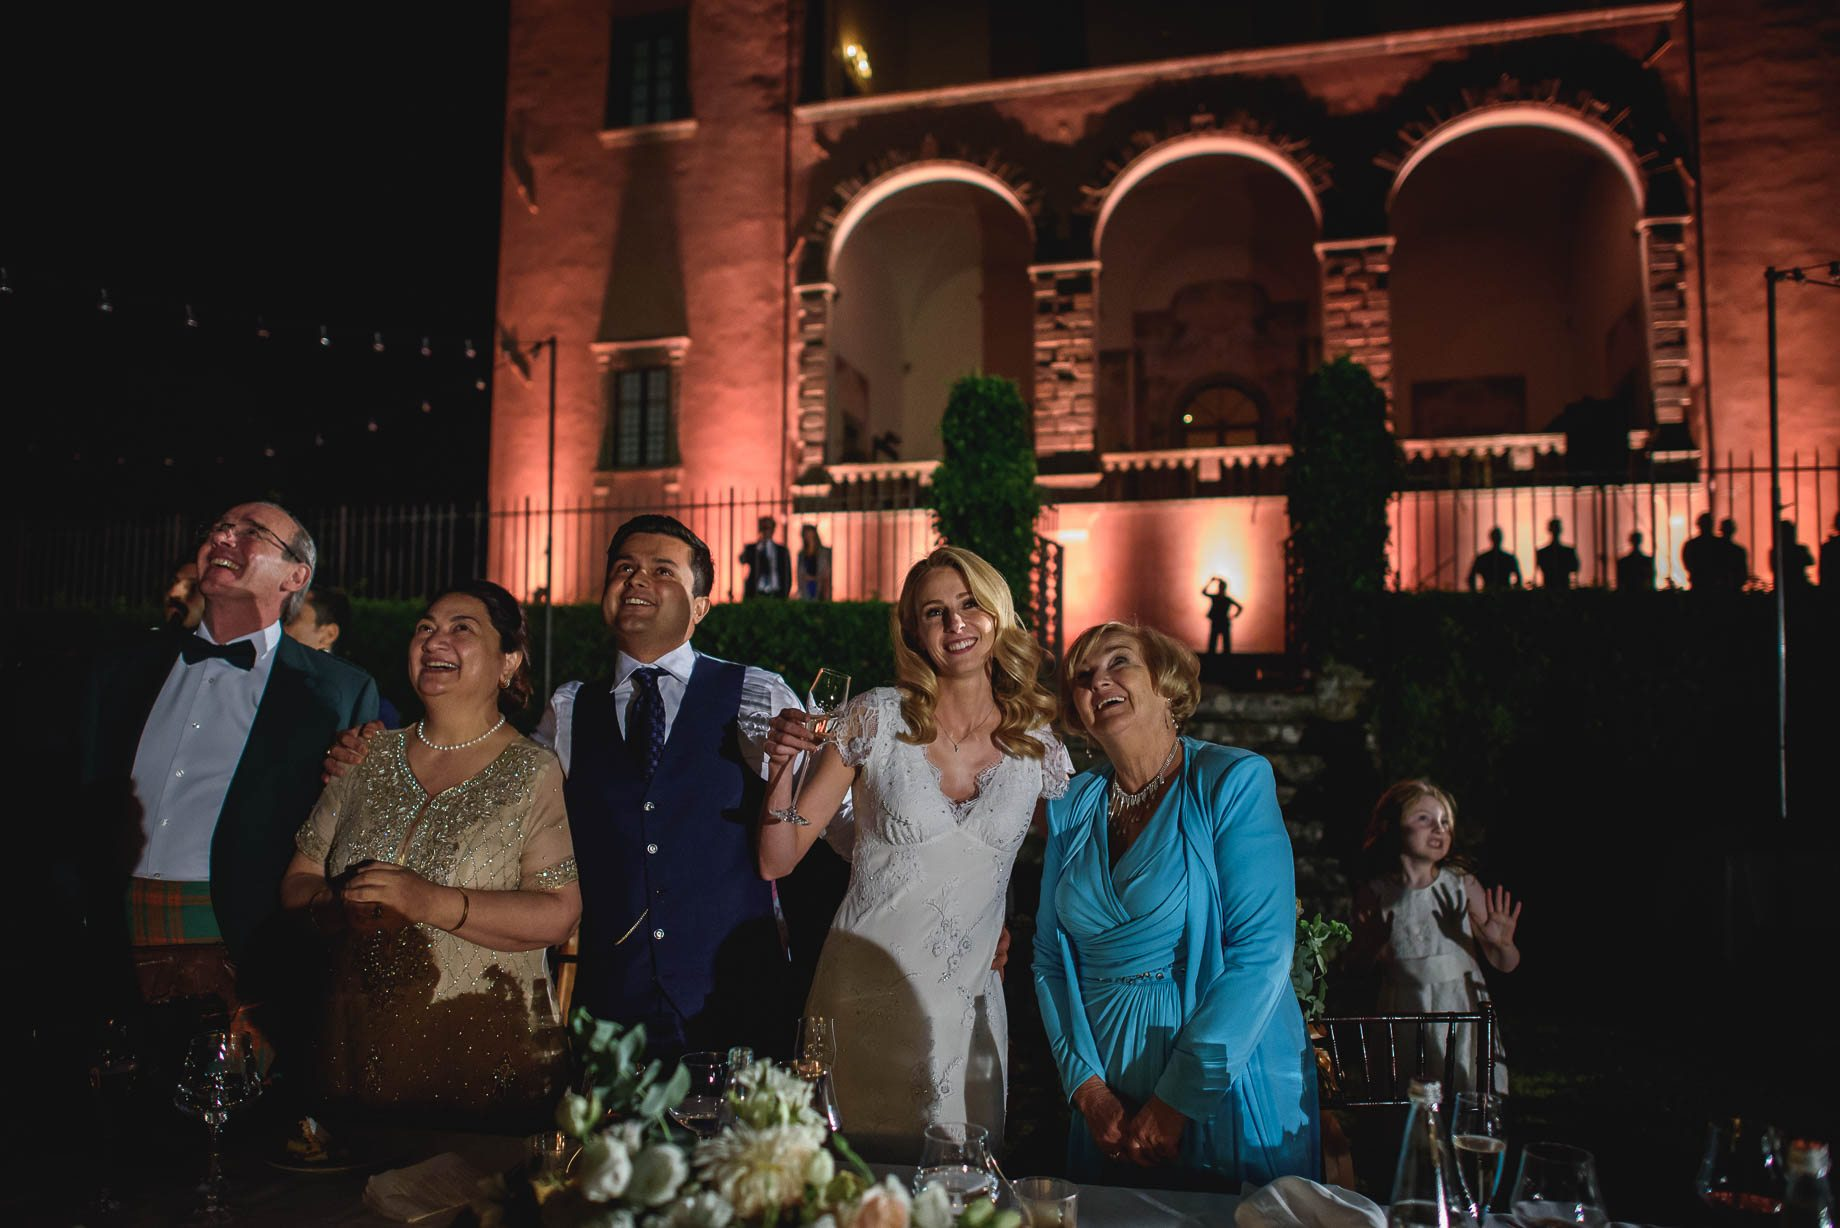 Tuscany wedding photography - Roisin and Moubin - Guy Collier Photography (210 of 251)